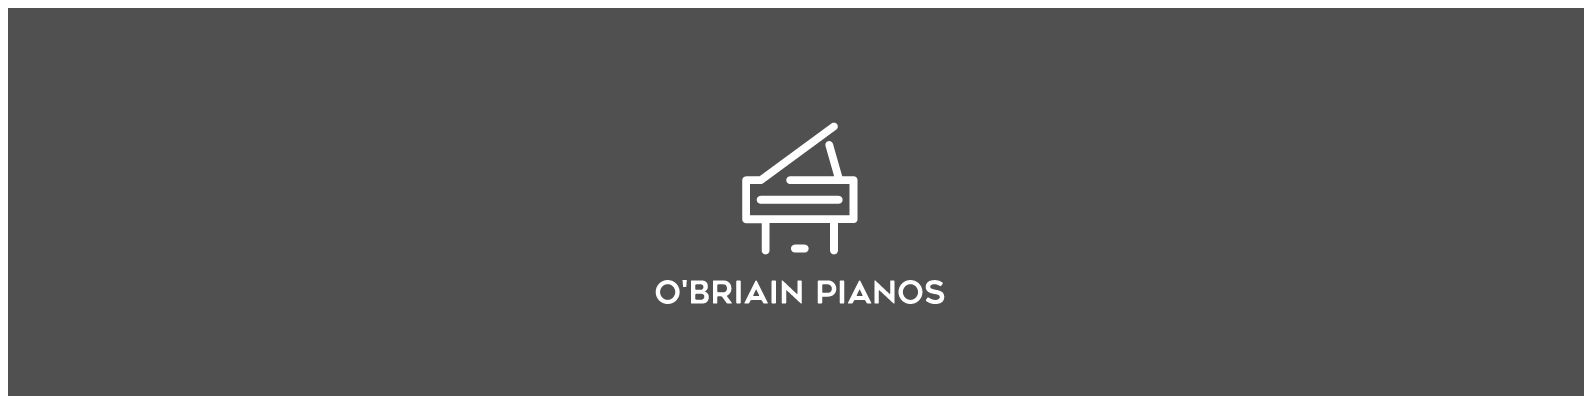 Flute Lessons at Fermata School of Music-O'Briain Pianos